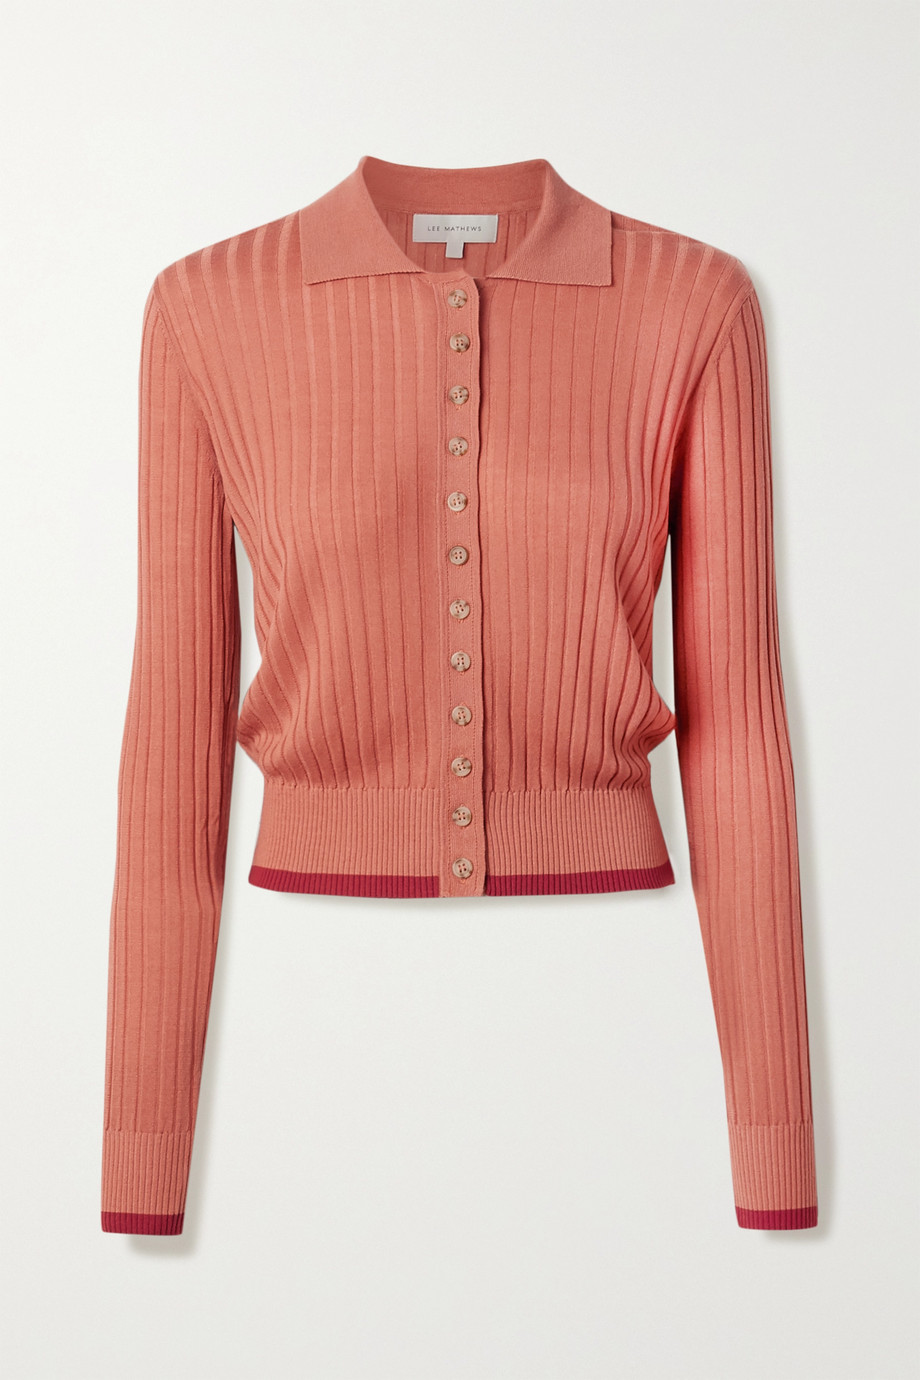 Lee Mathews Ribbed Tencel cardigan